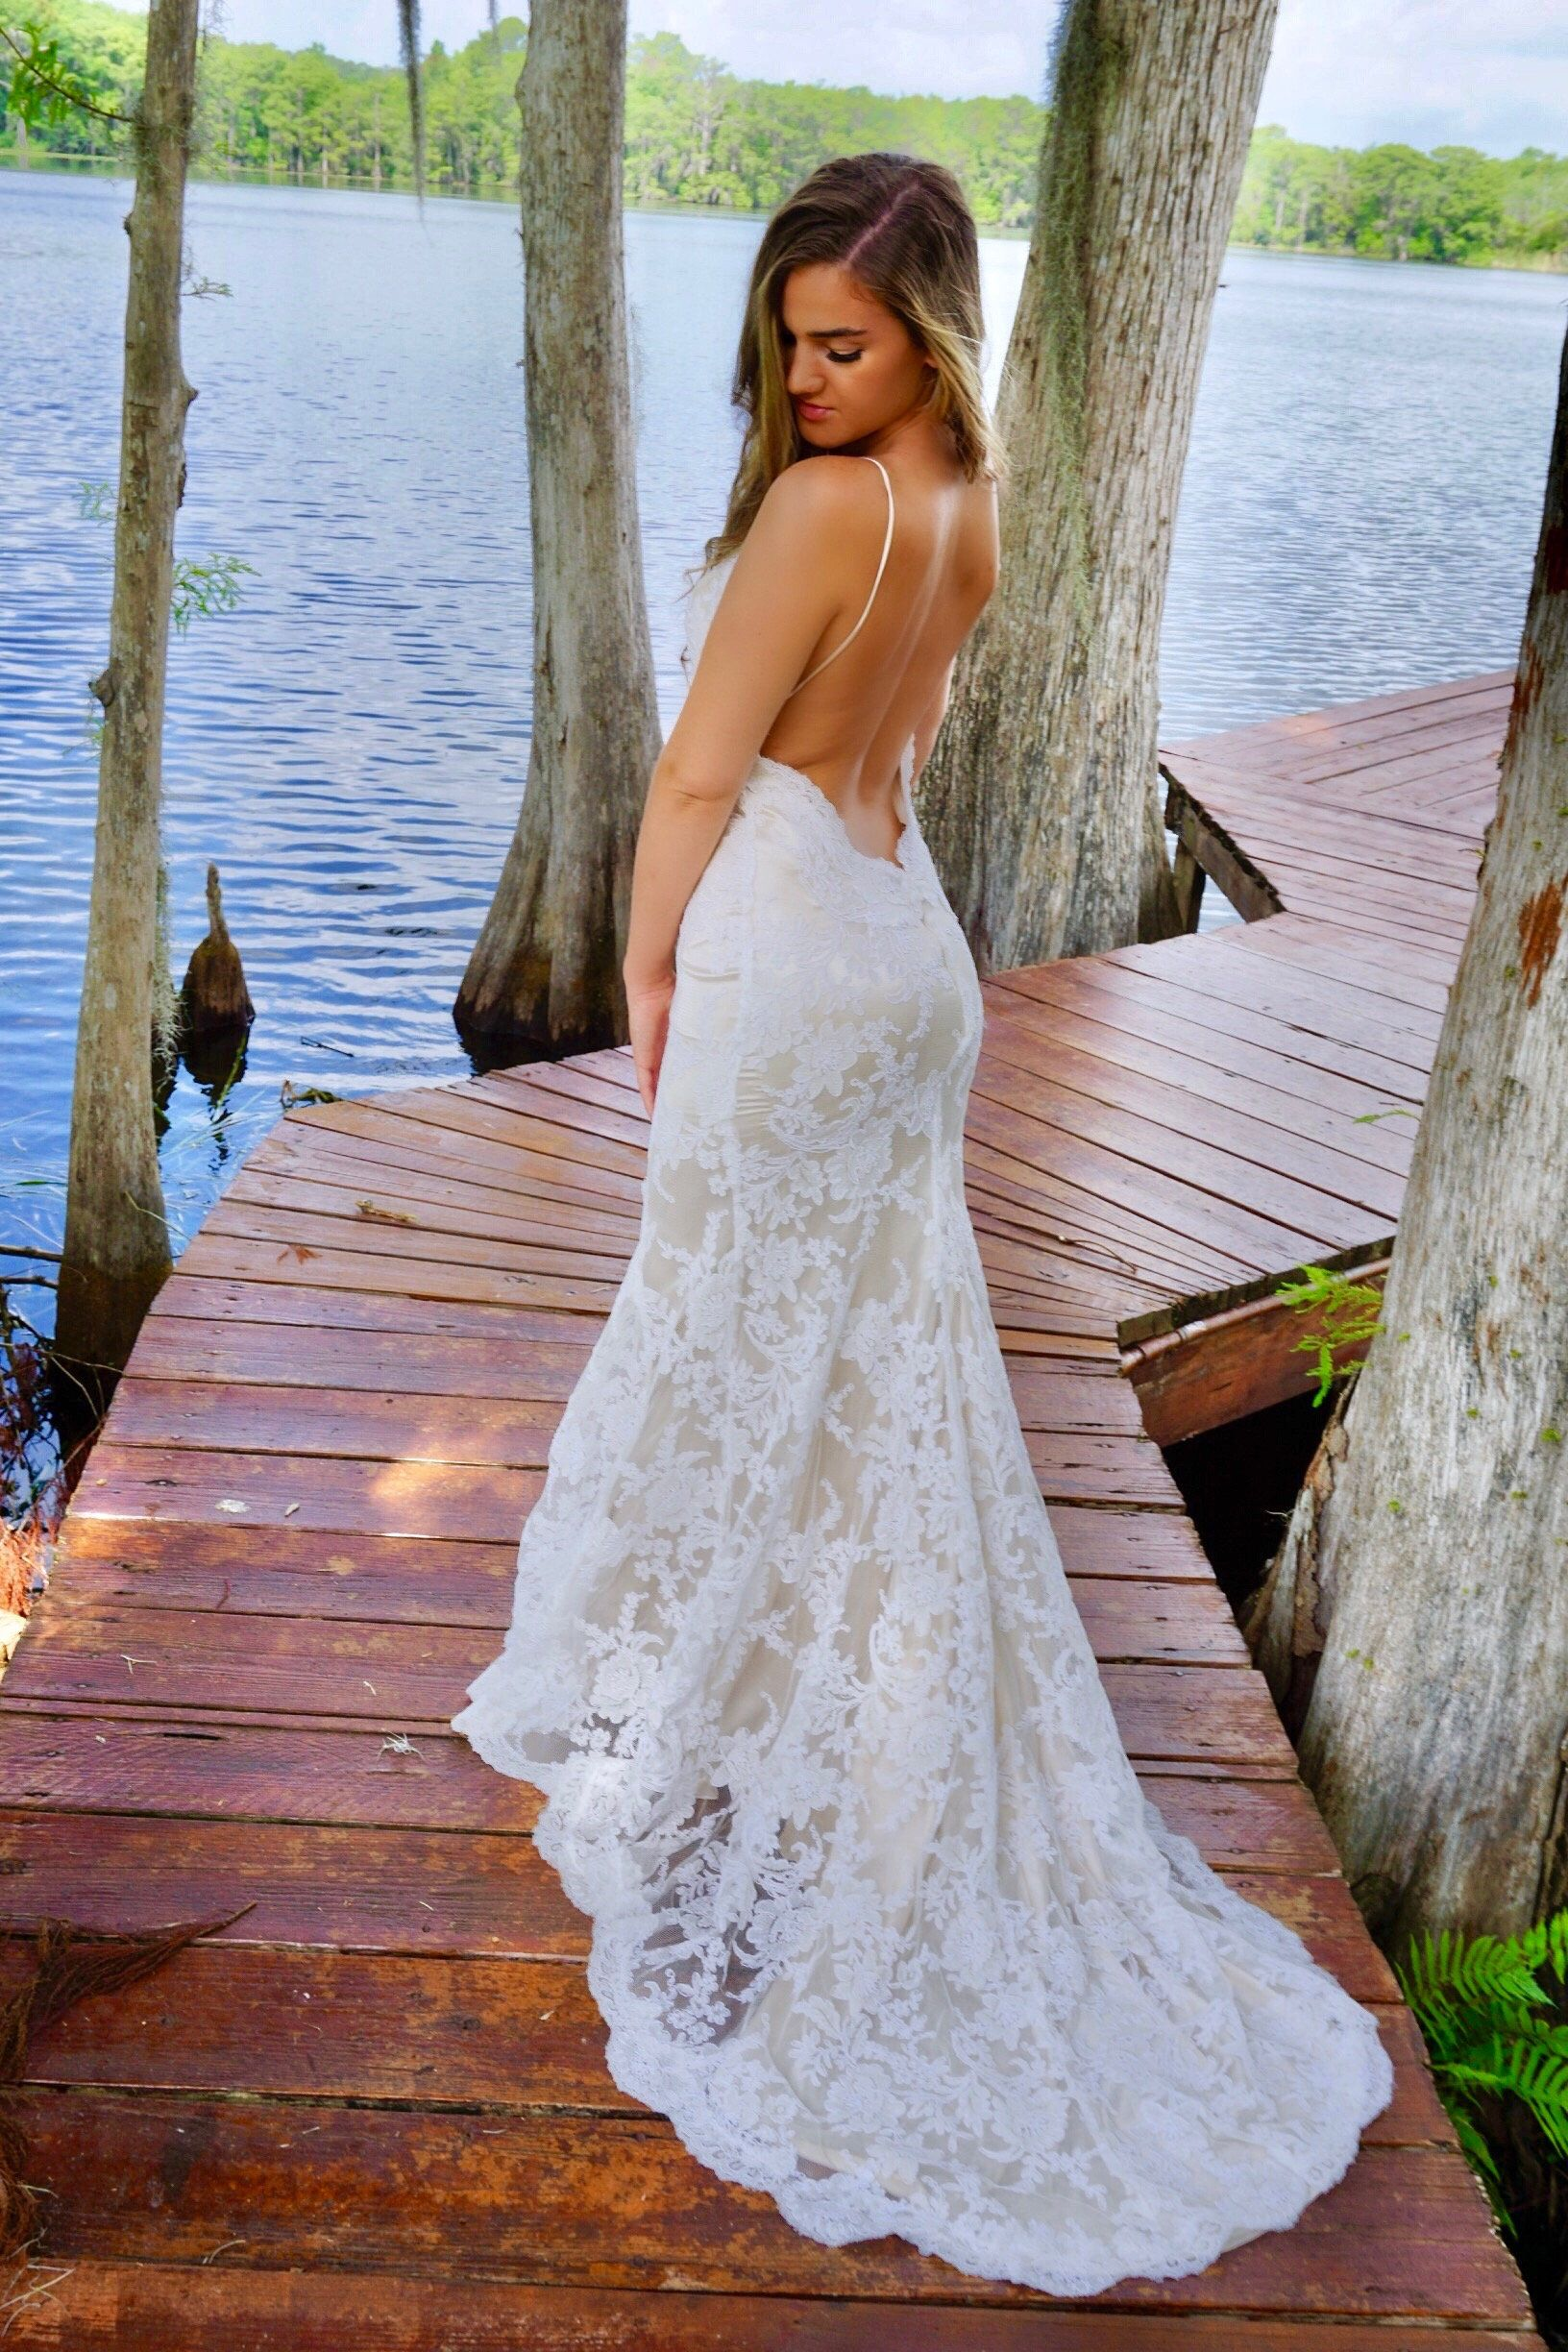 Low Open Back Wedding Dress Backless Bridal Gown Boho Etsy In 2020 Backless Bridal Gowns Tight Wedding Dress Backless Wedding Dress